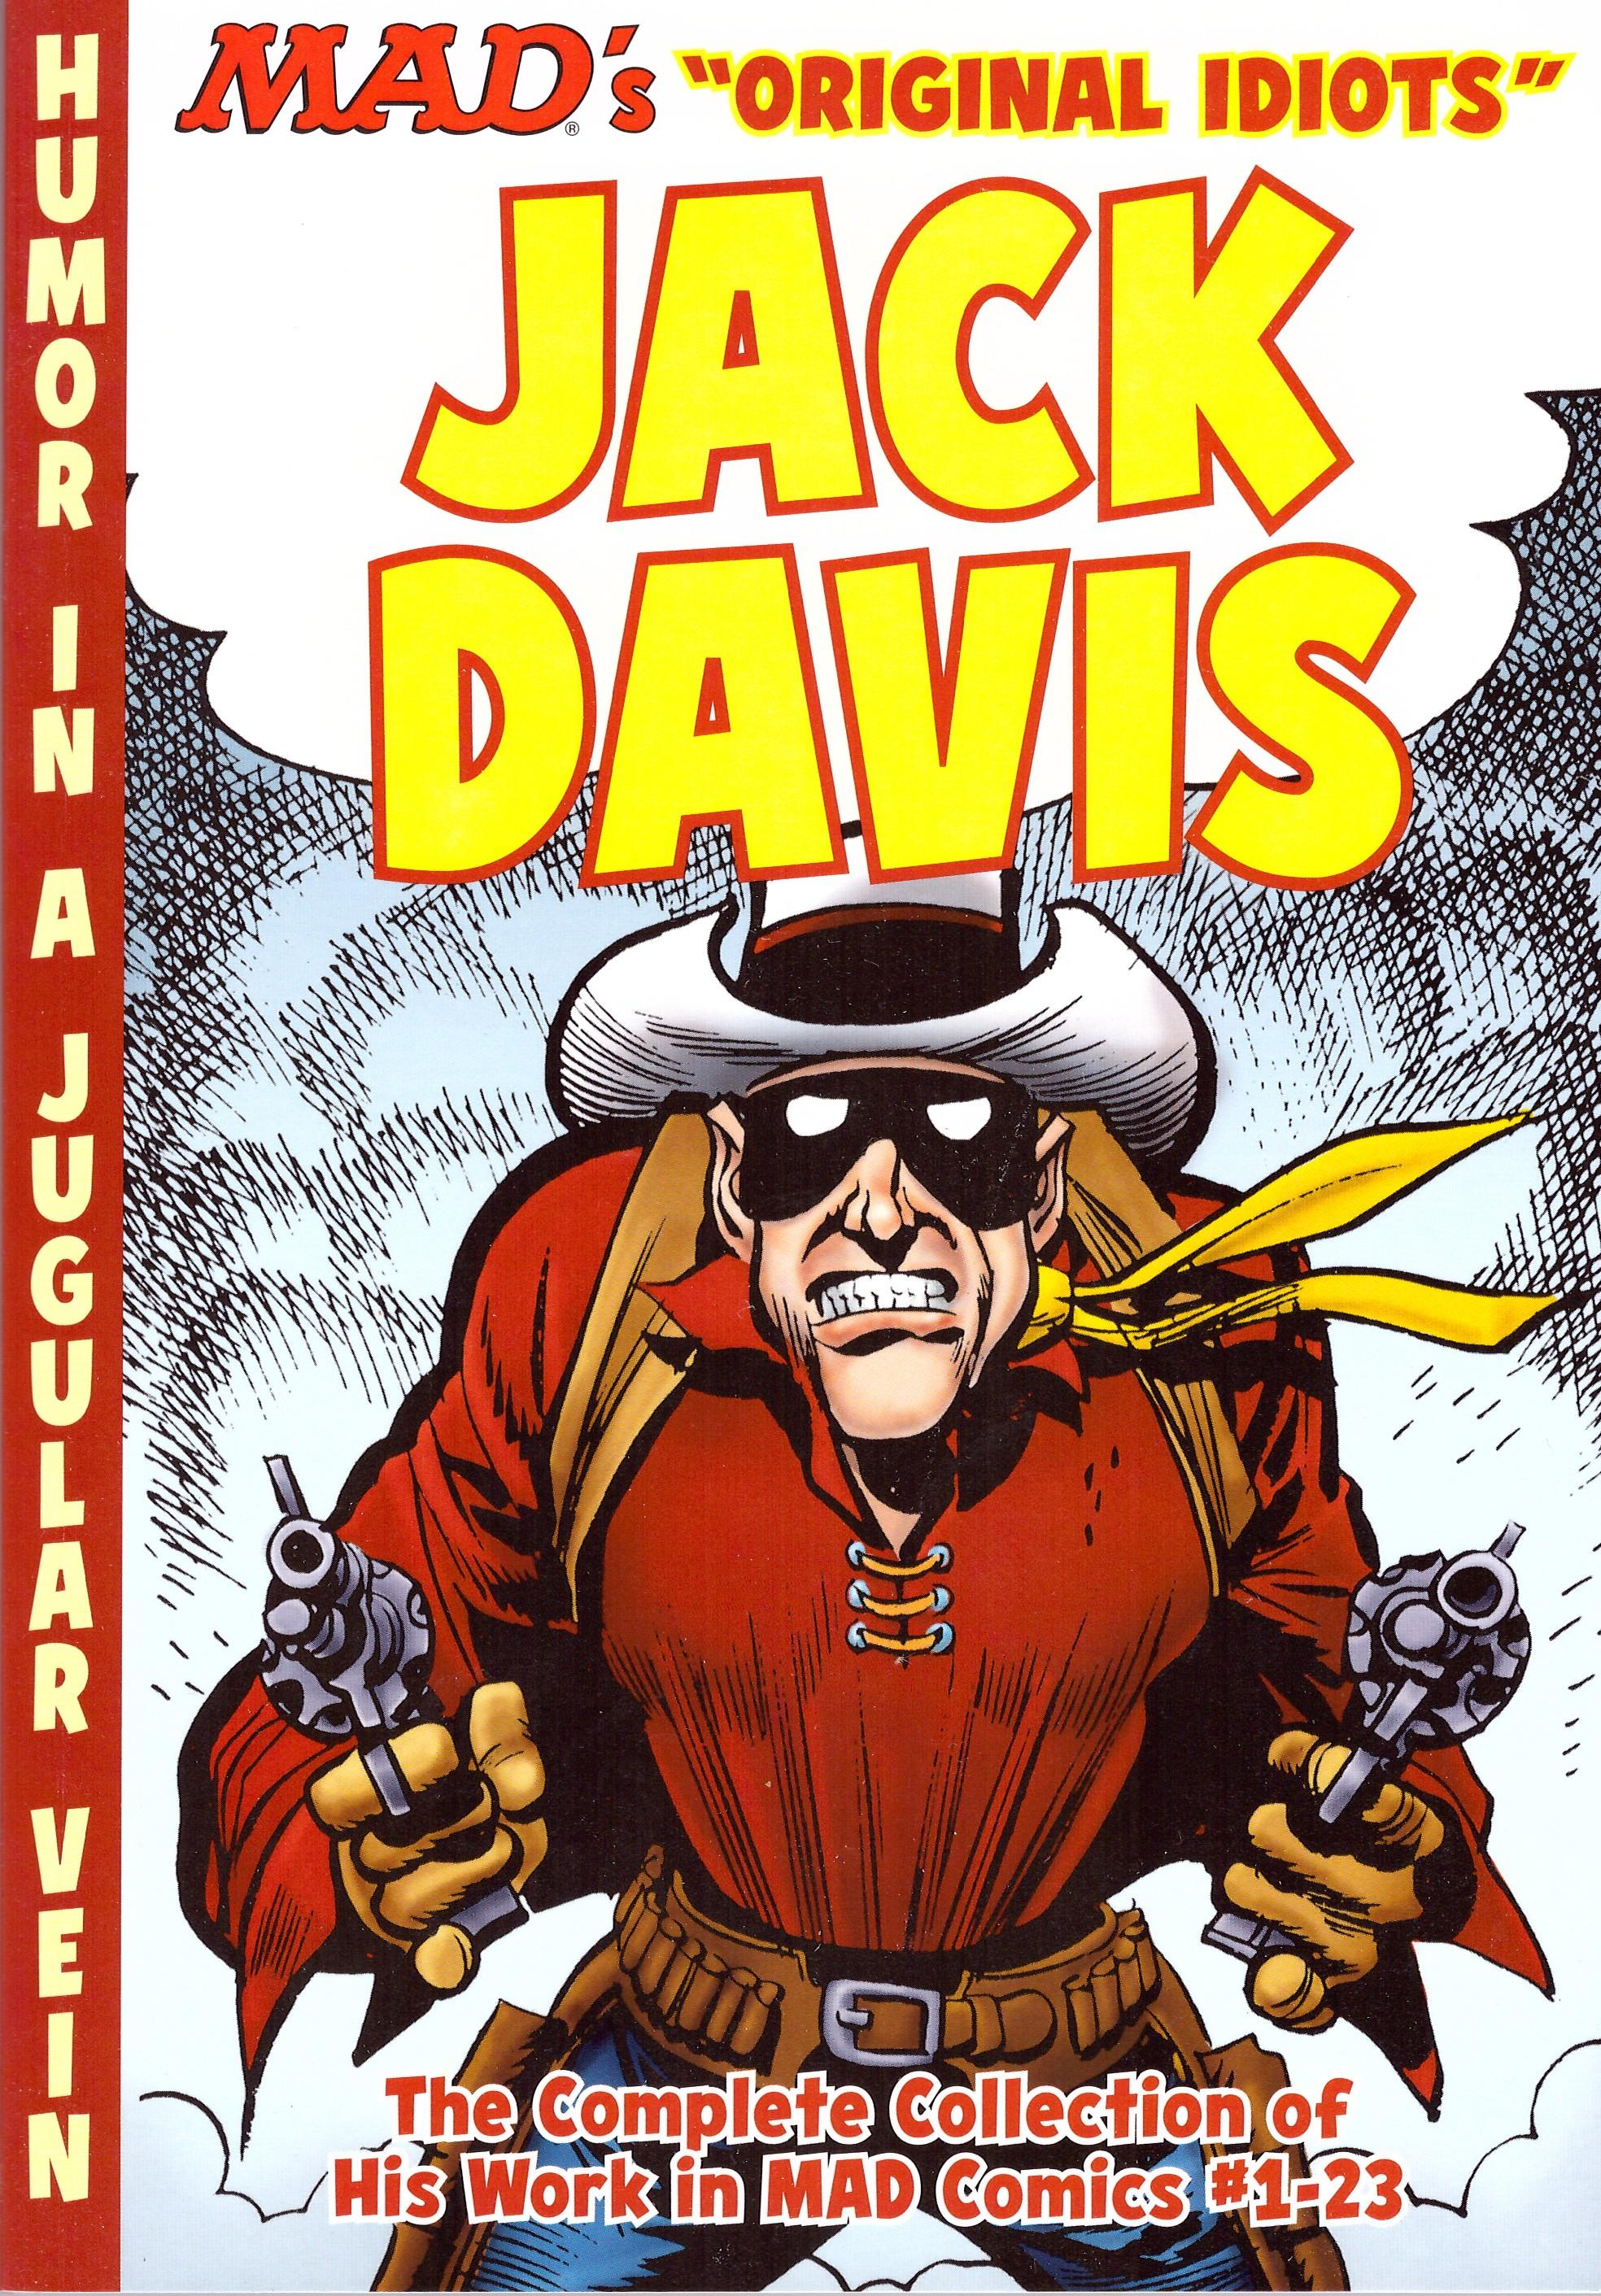 The MAD Art of Jack Davis: The Complete Collection of His Work from MAD Comics #1-23 • USA • 1st Edition - New York